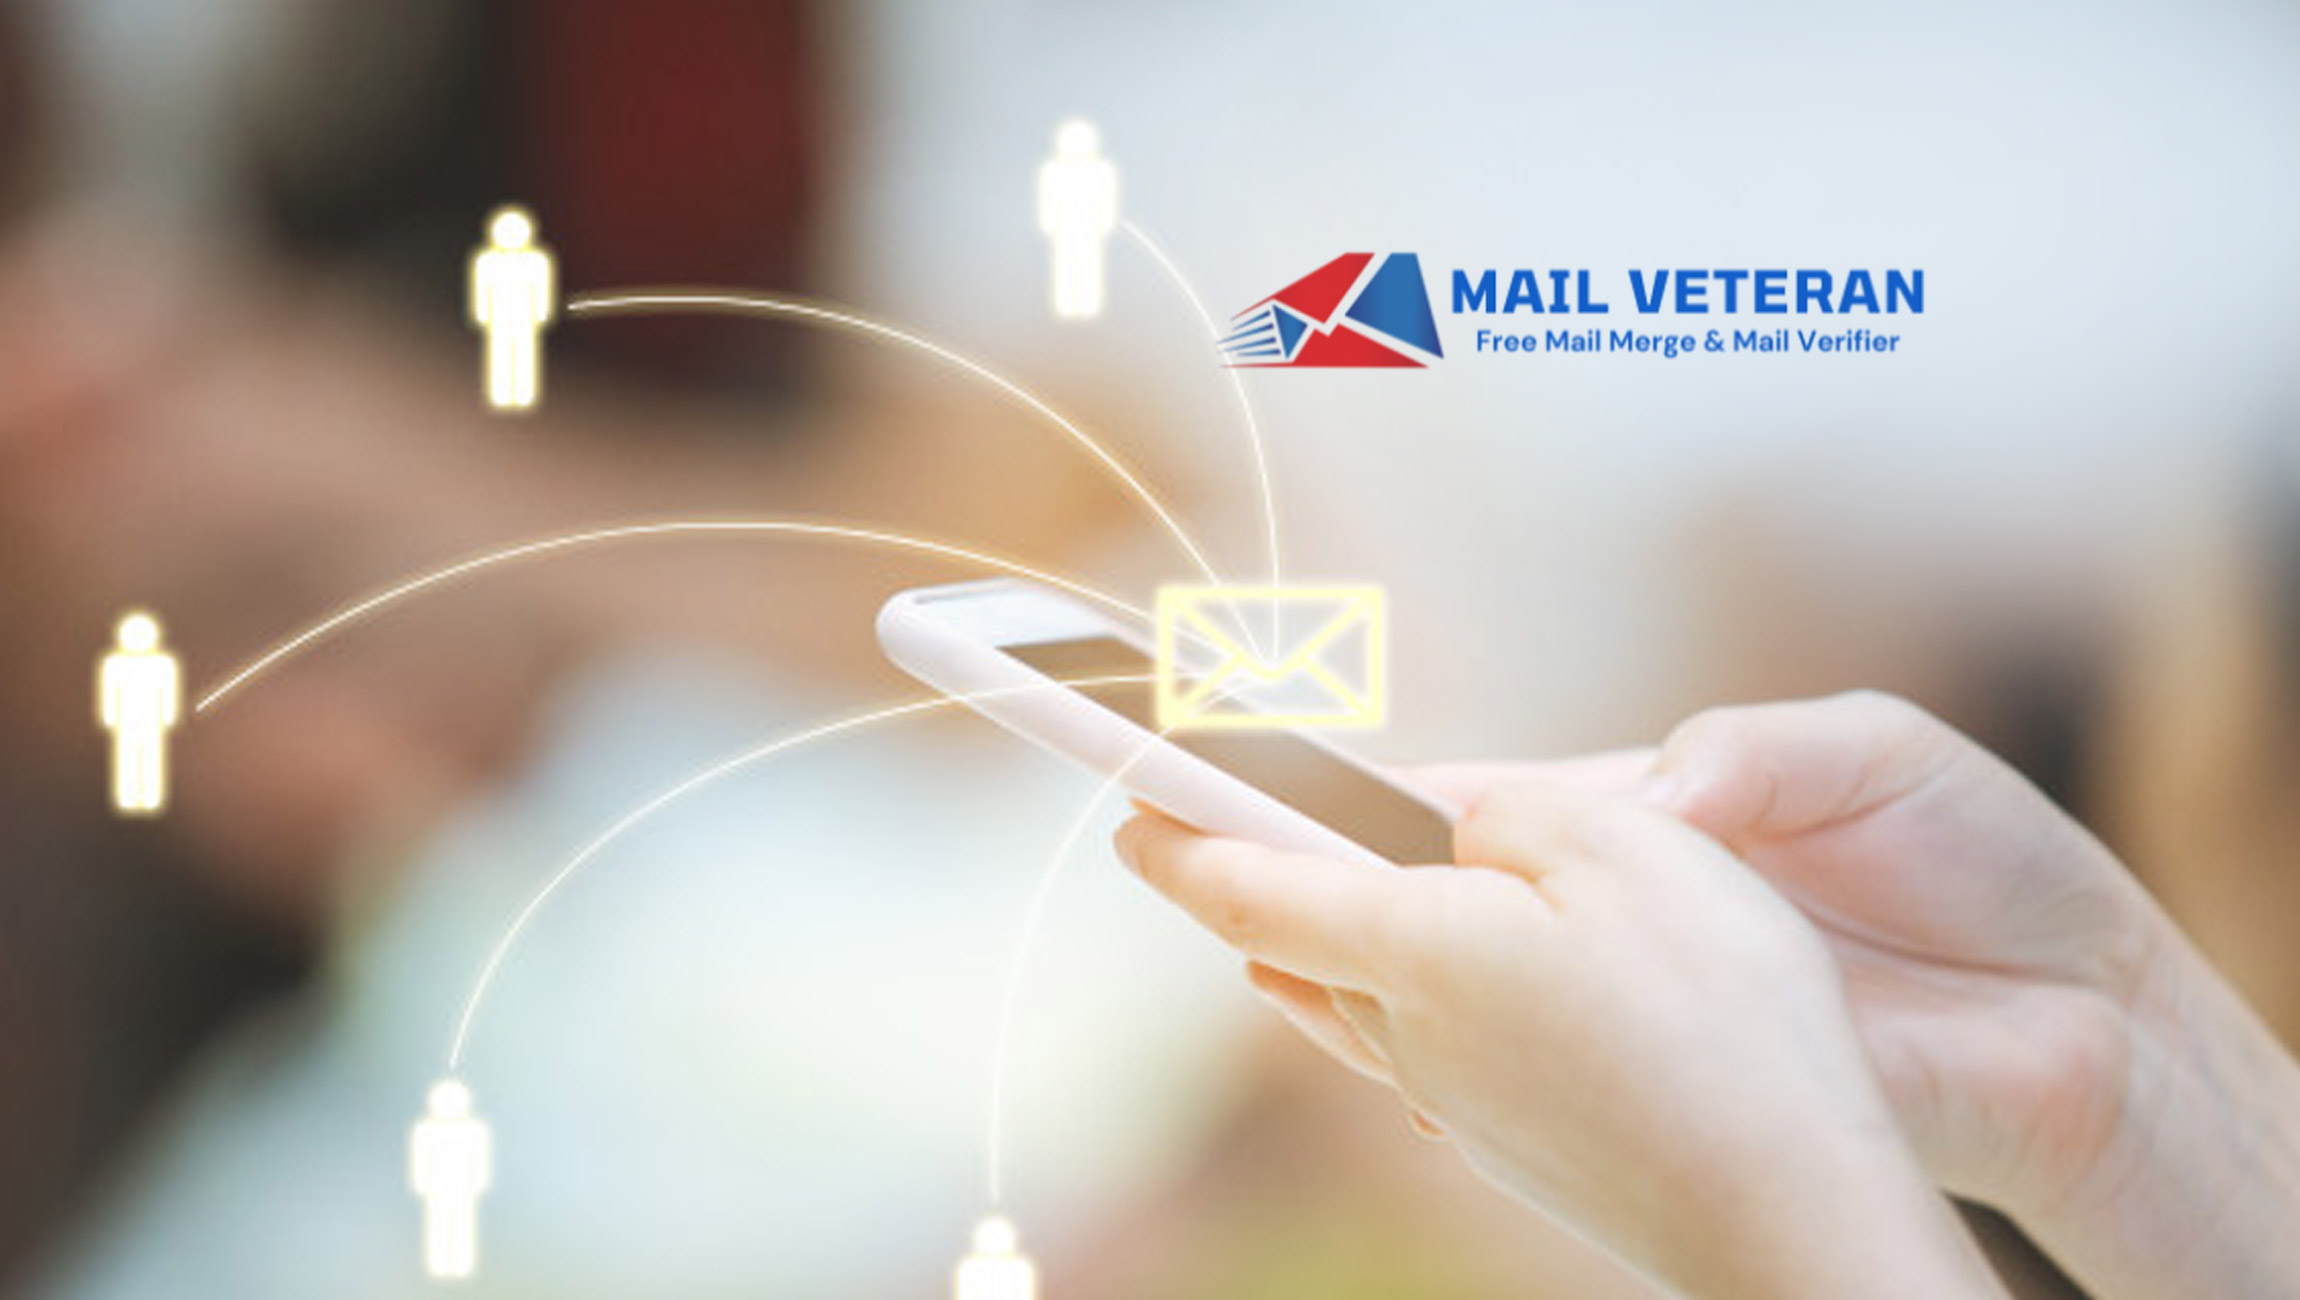 Bulk Email Verifier By Mailveteran | Validate Your Email List With 99% Accuracy